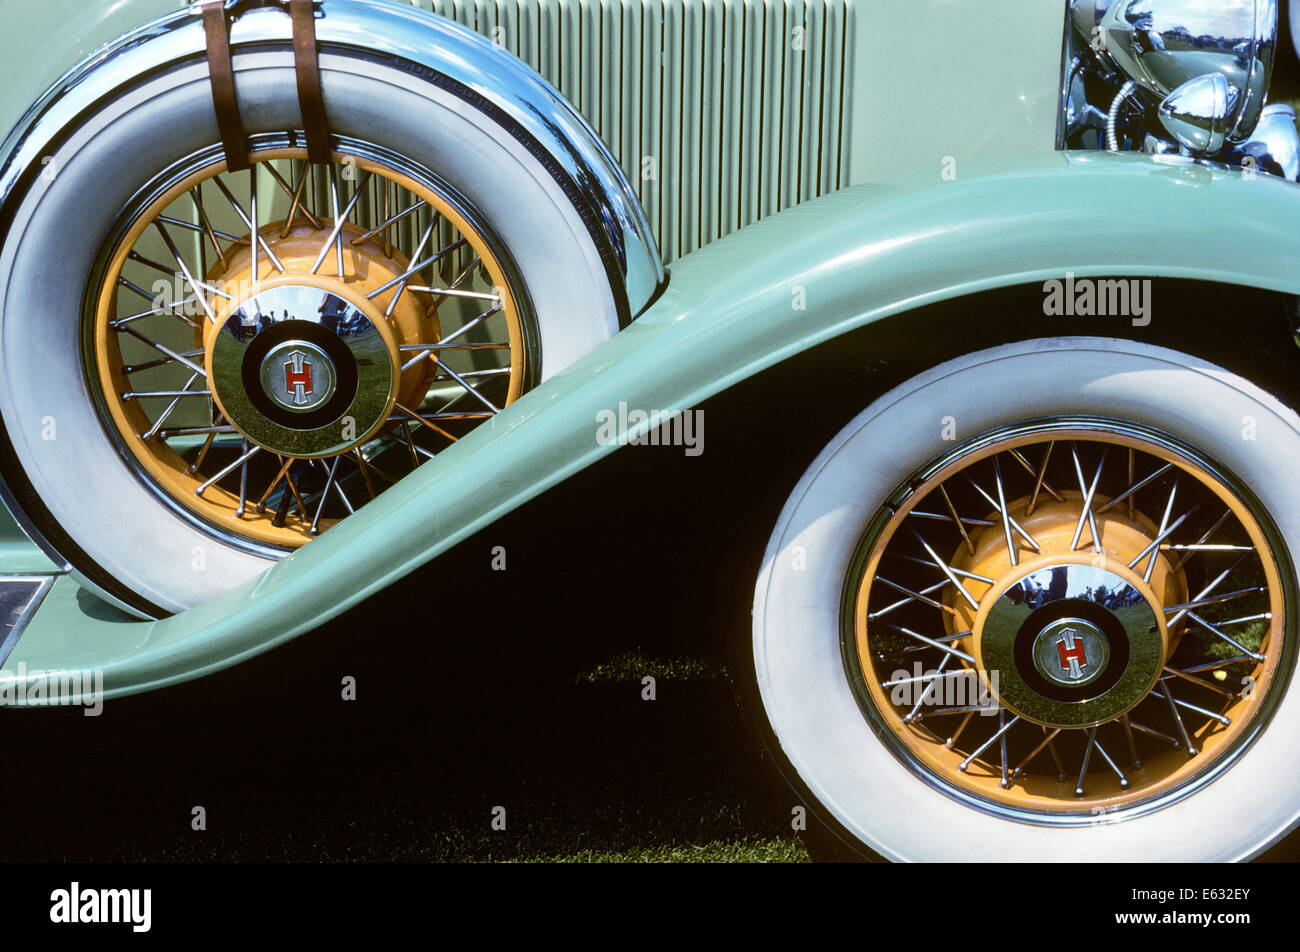 Wire Wheel Car Stock Photos & Wire Wheel Car Stock Images - Alamy